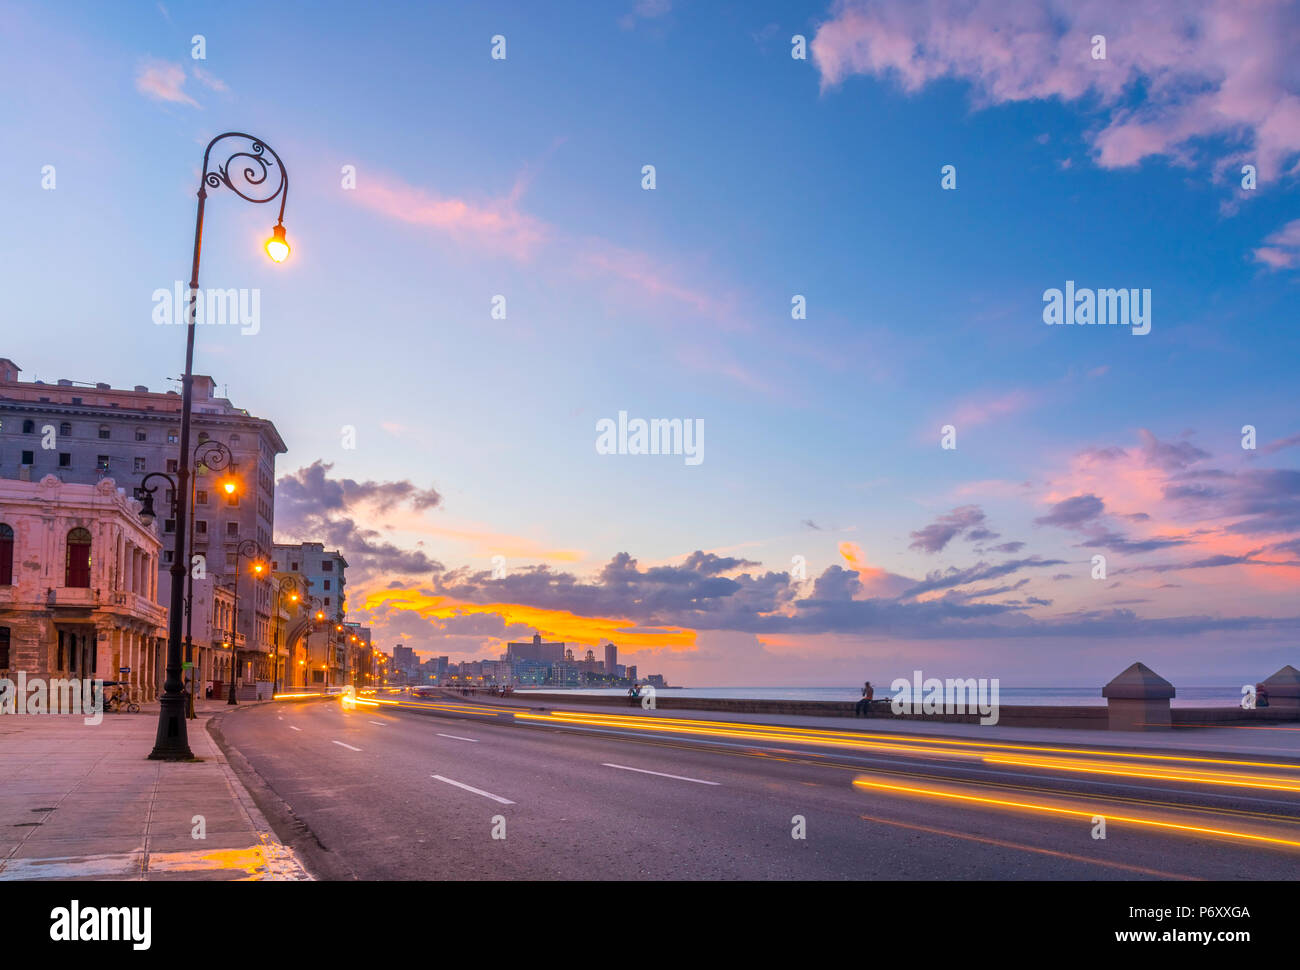 Cuba, Havana, The Malecon - Stock Image